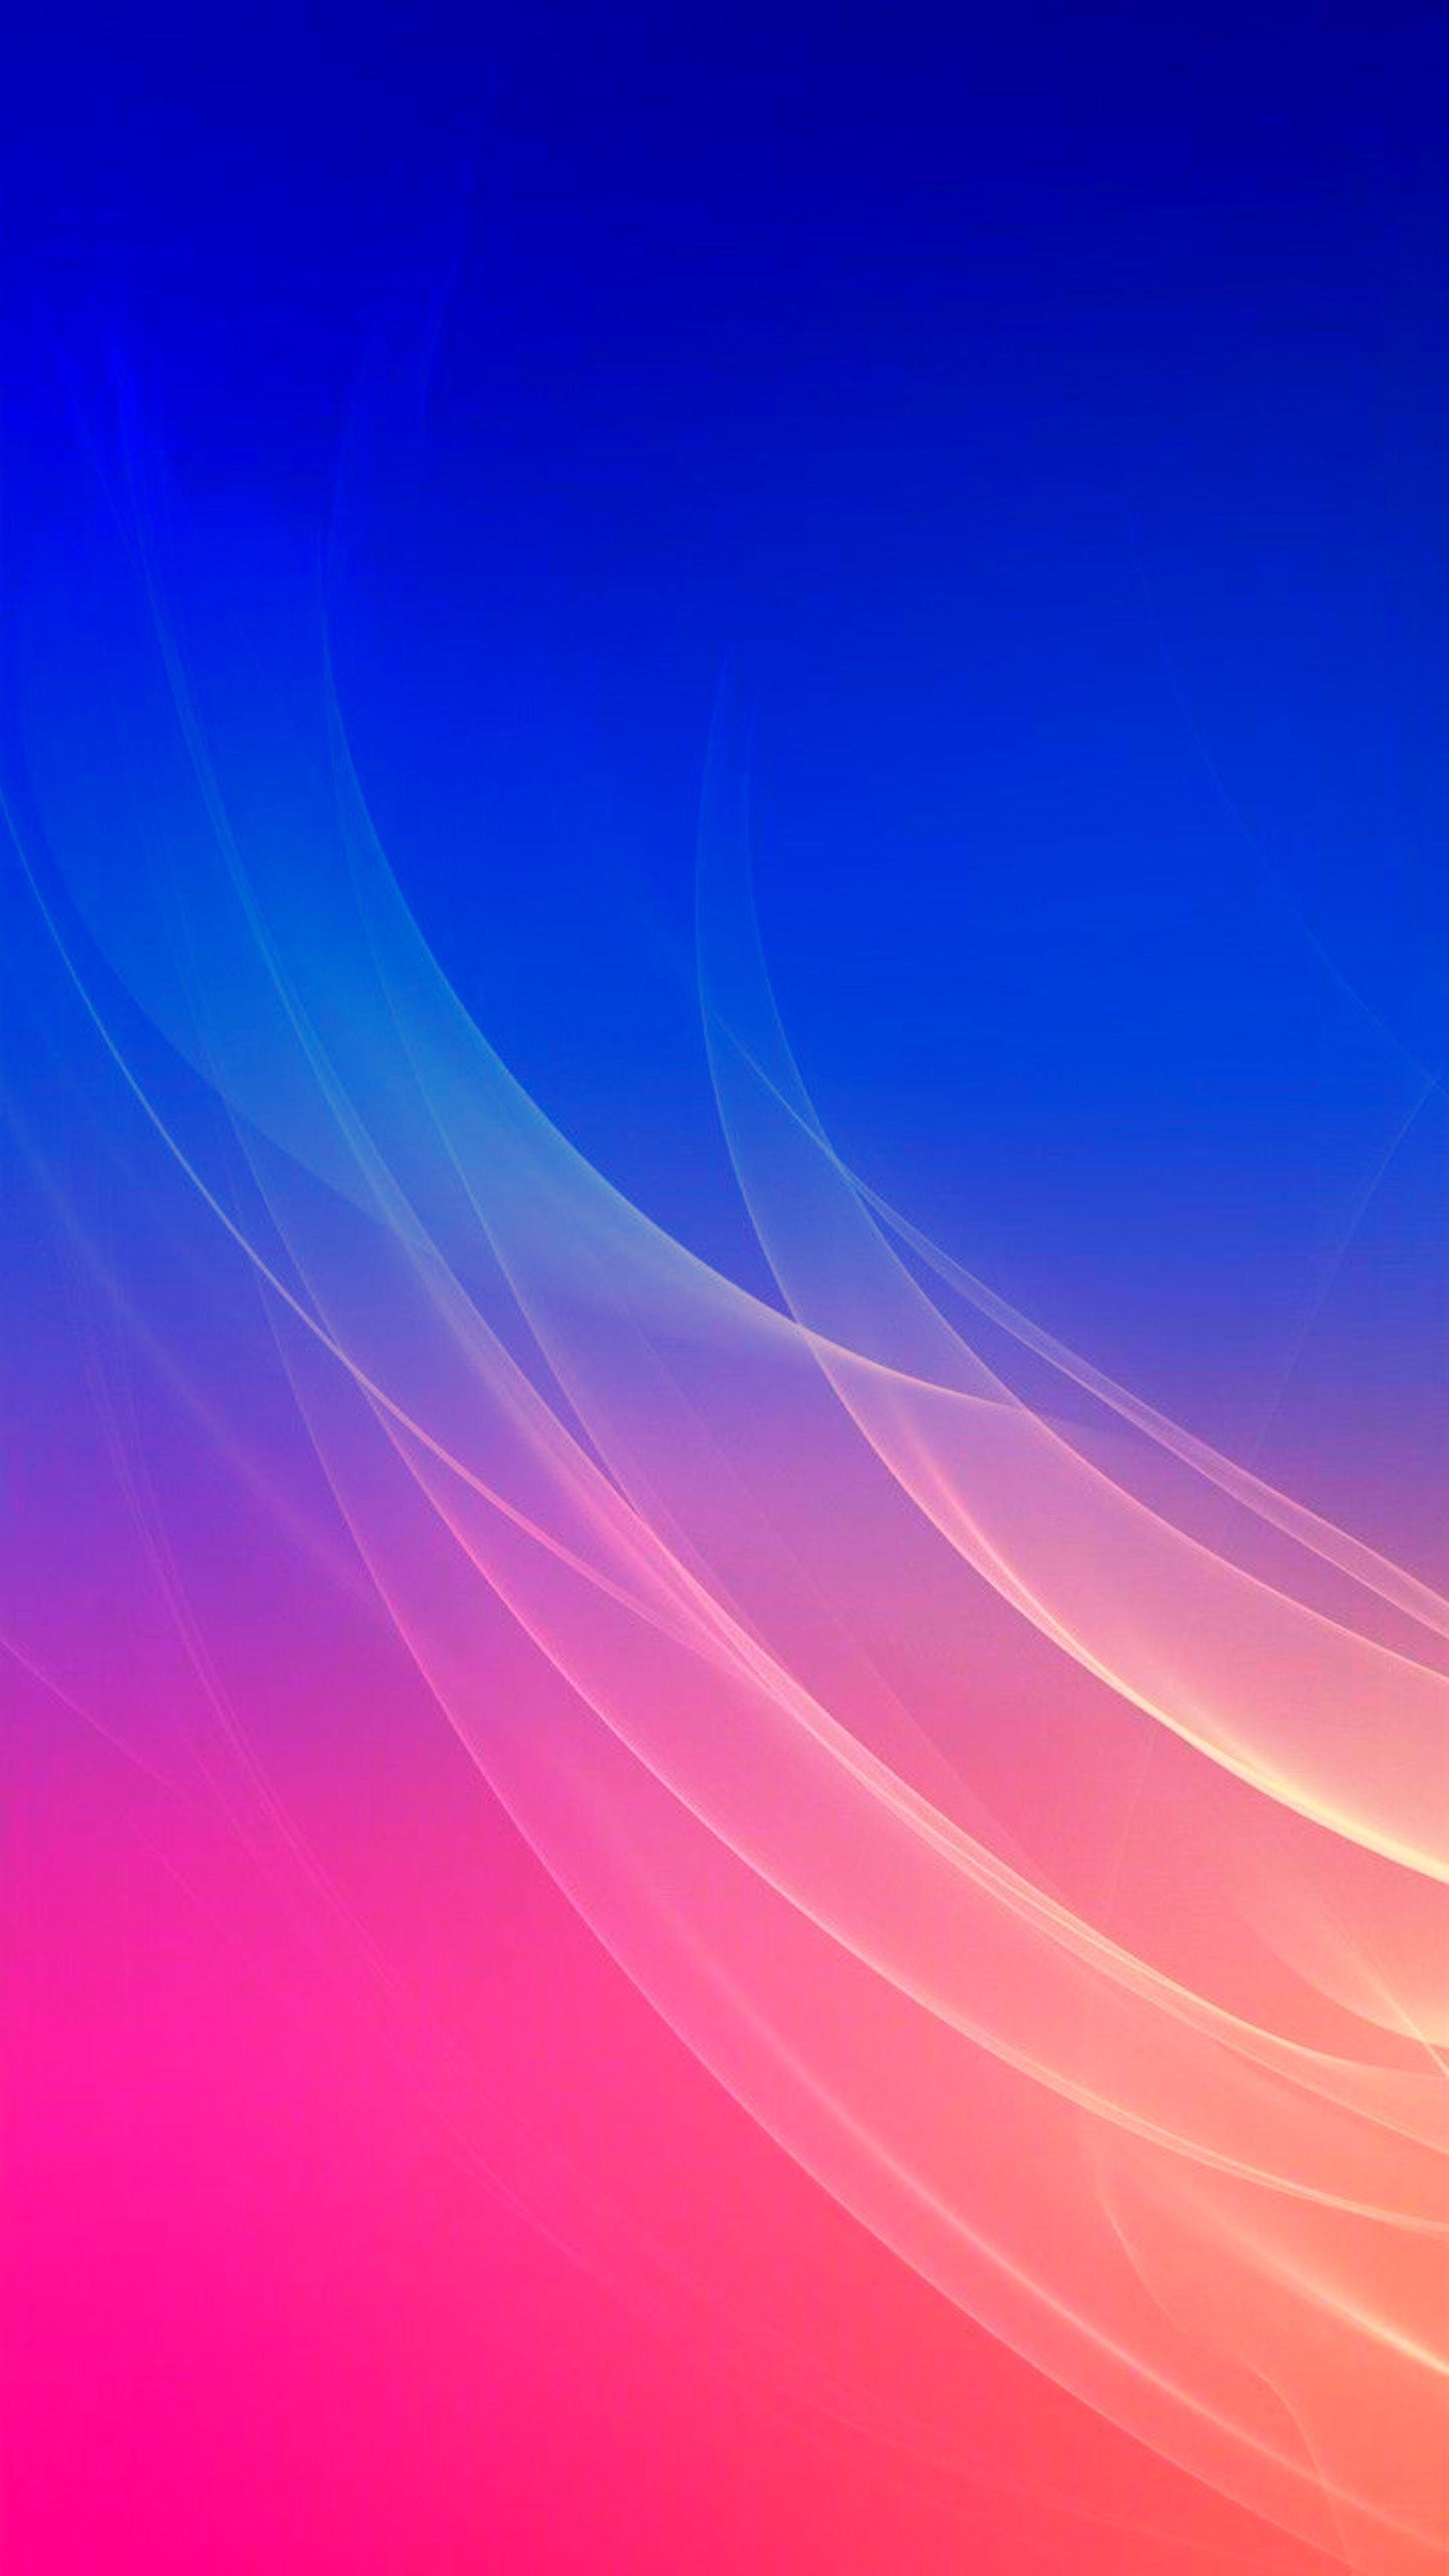 Samsung Galaxy A20s Wallpapers - Download | DroidViews